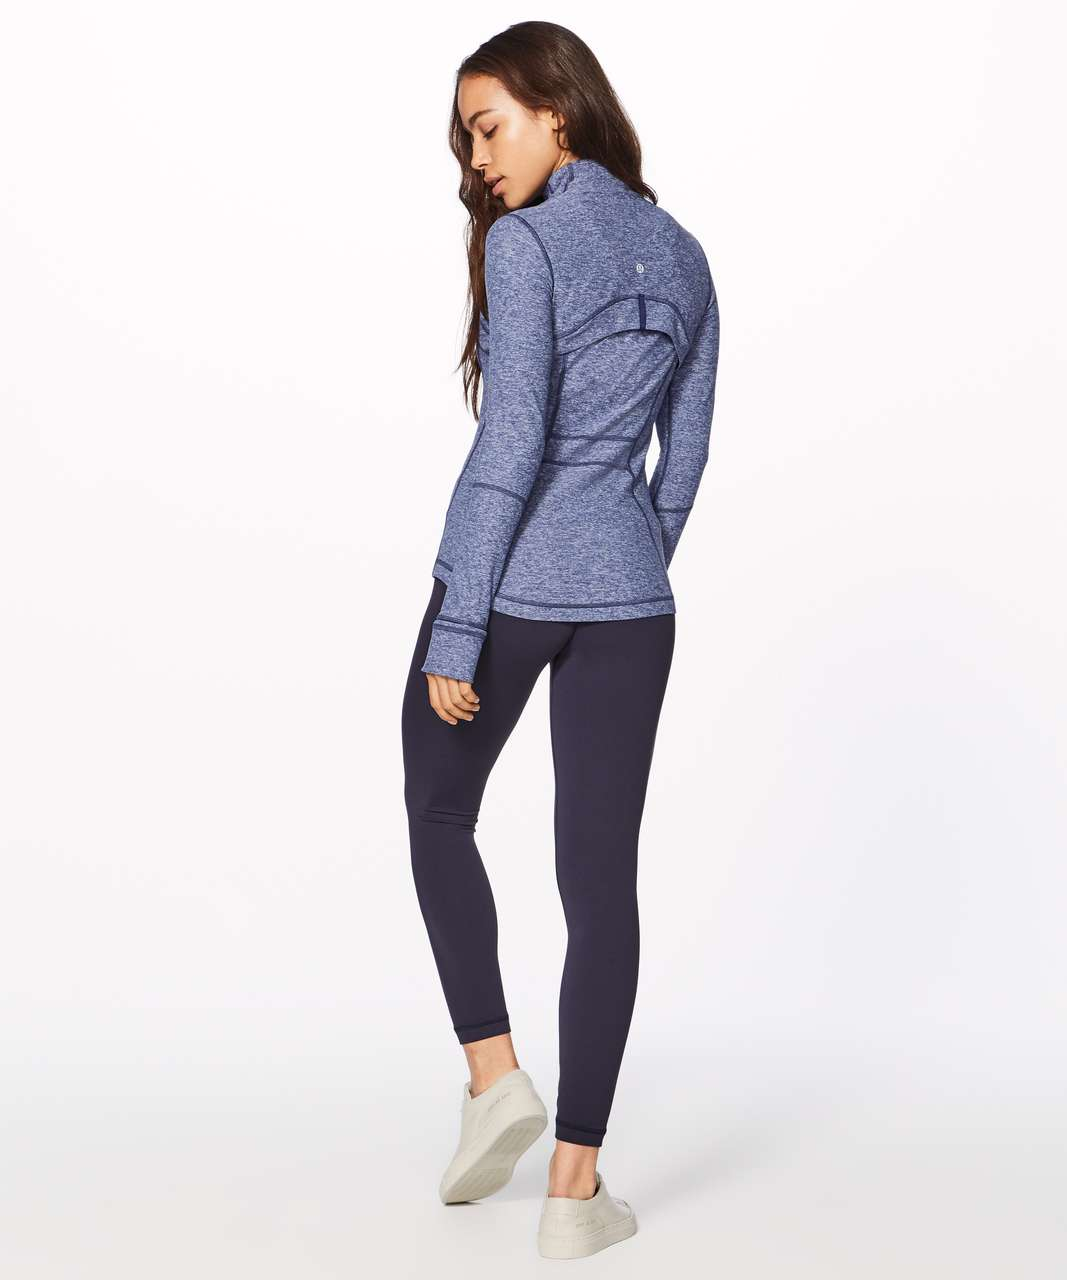 Lululemon Define Jacket (Rulu) - Heathered Hero Blue